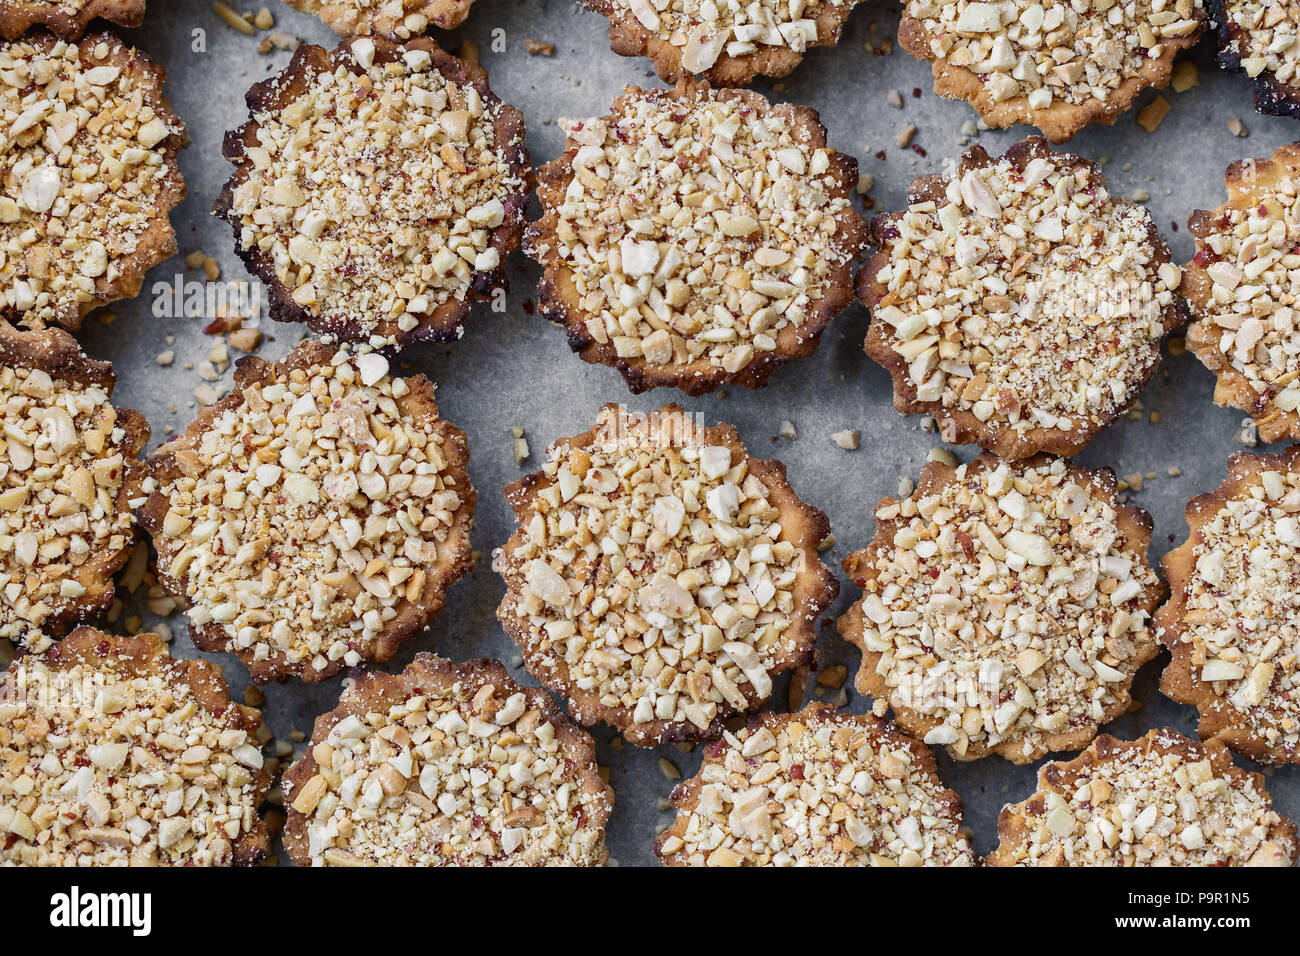 Cakes on a spacing in large quantities. - Stock Image